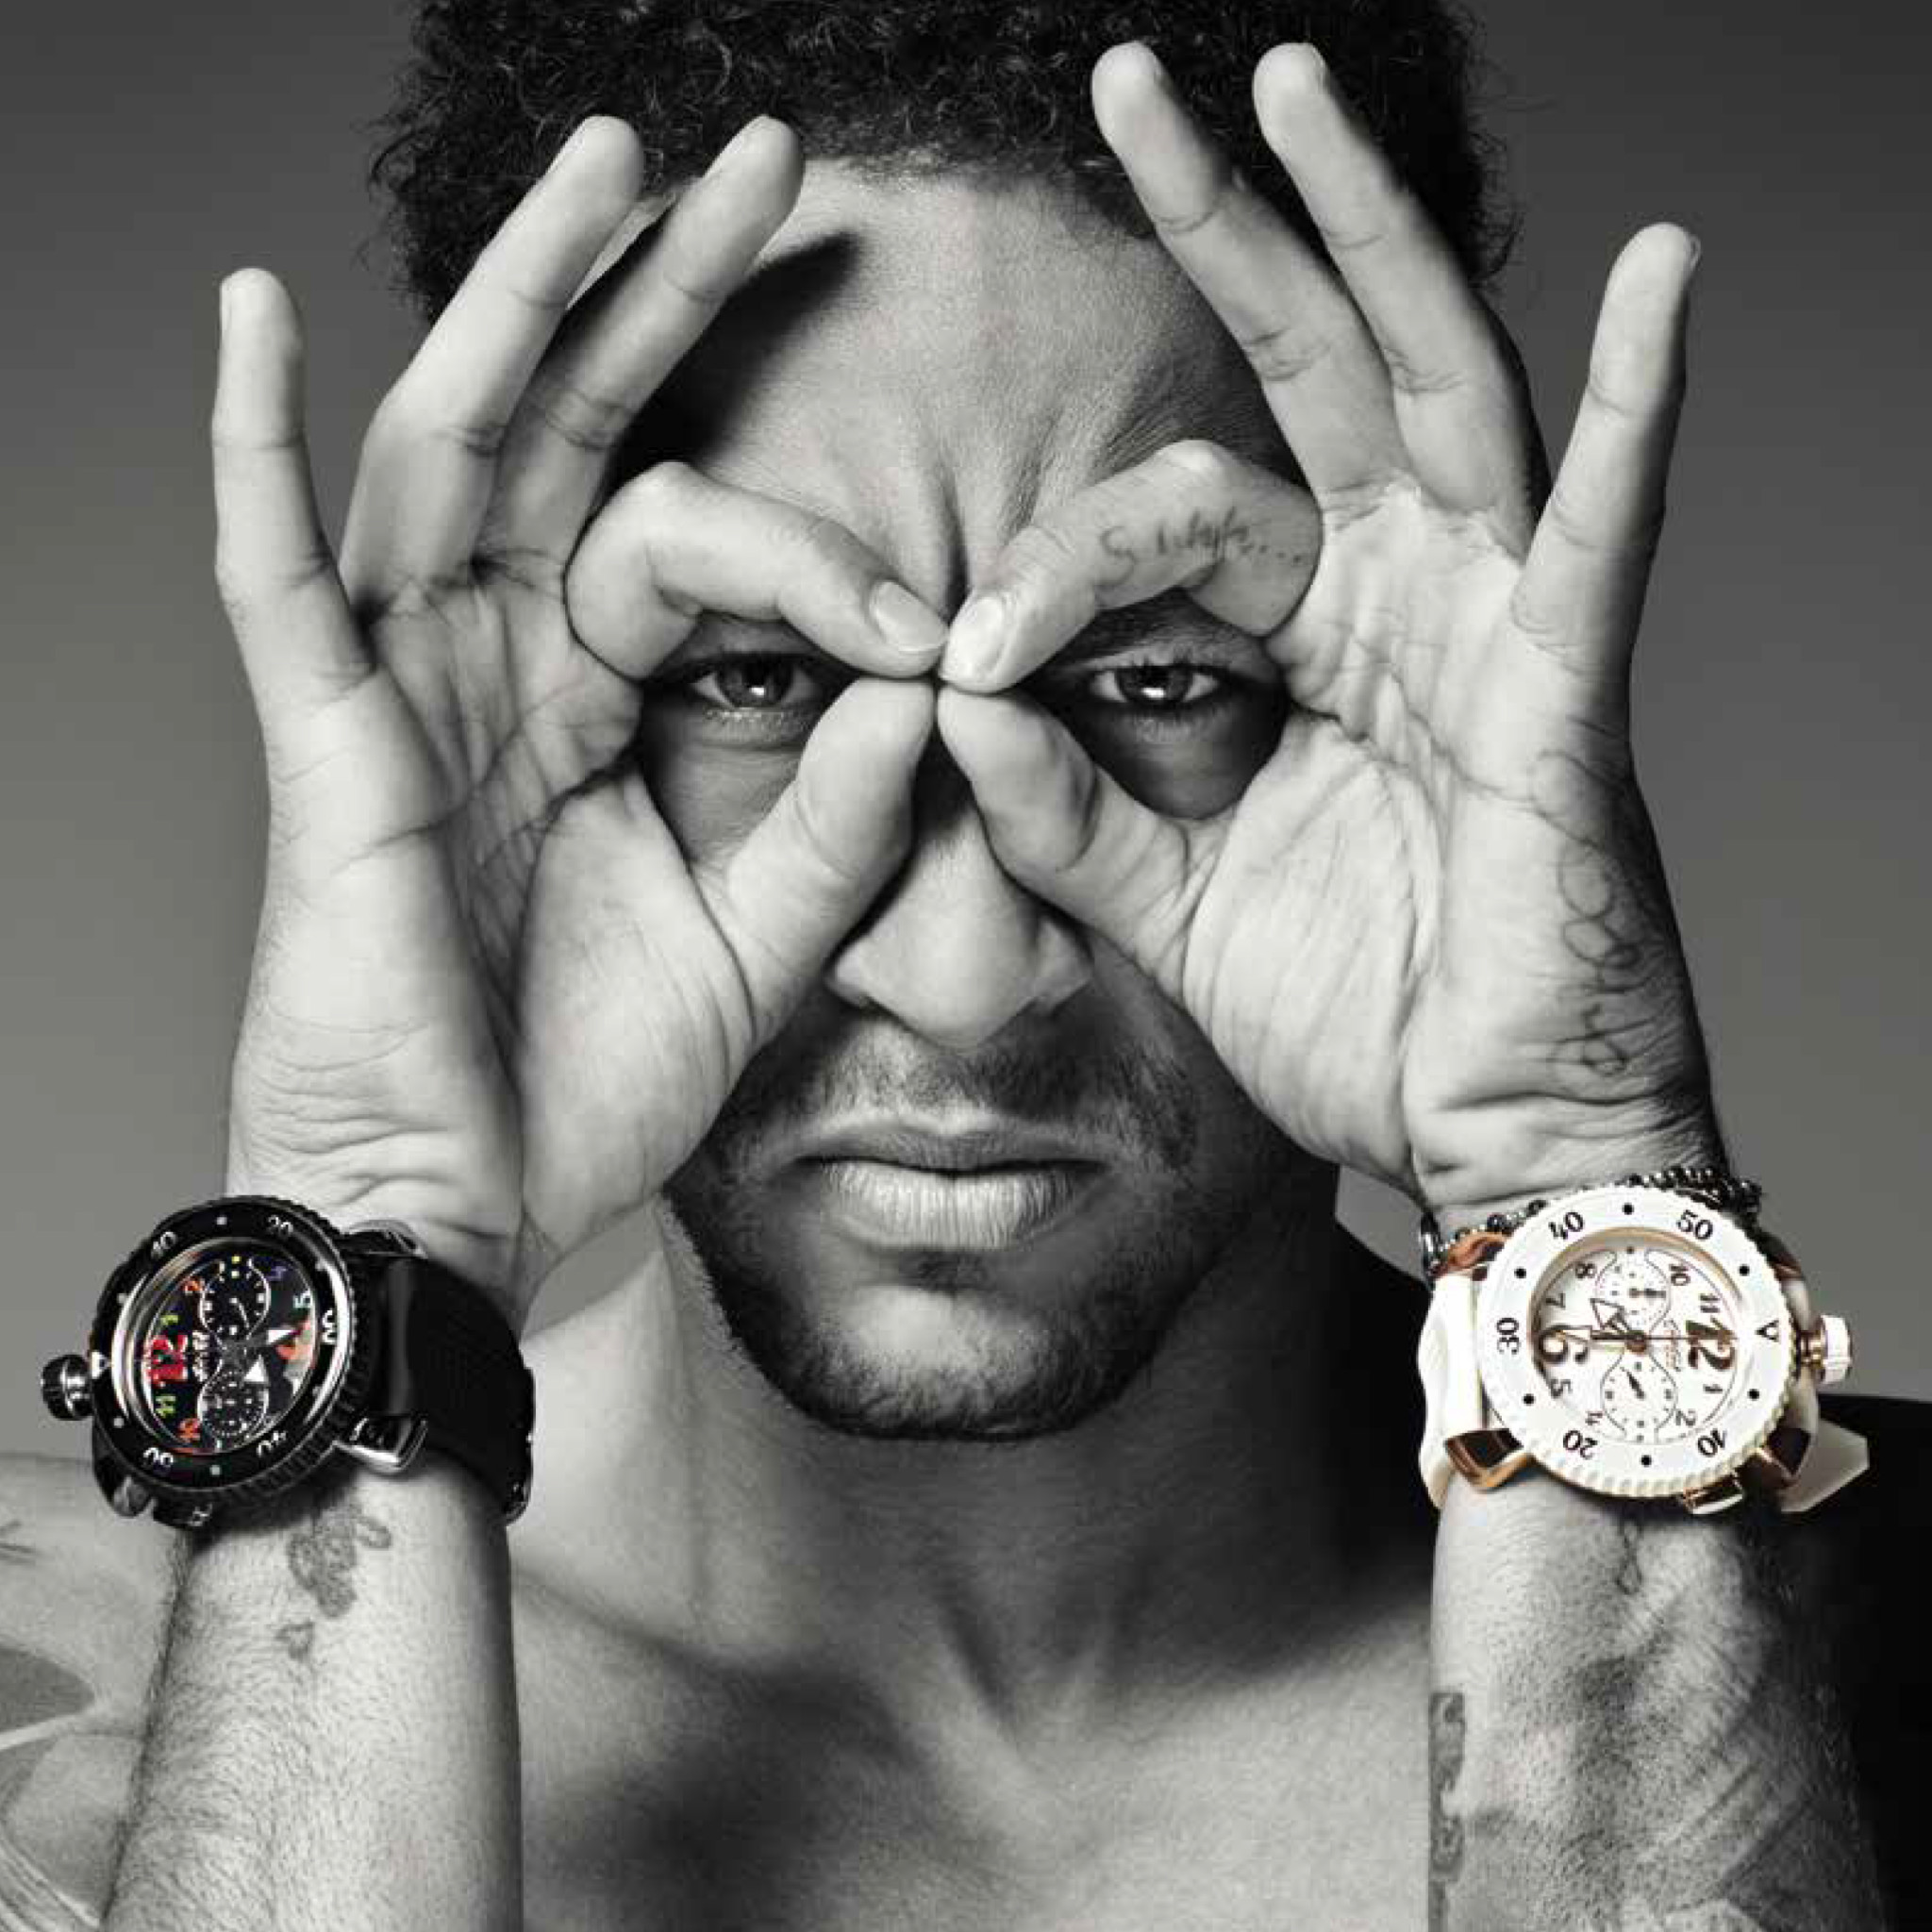 Neymar, who could be playing in the Premier League next season, is a face for GaGa Milano.